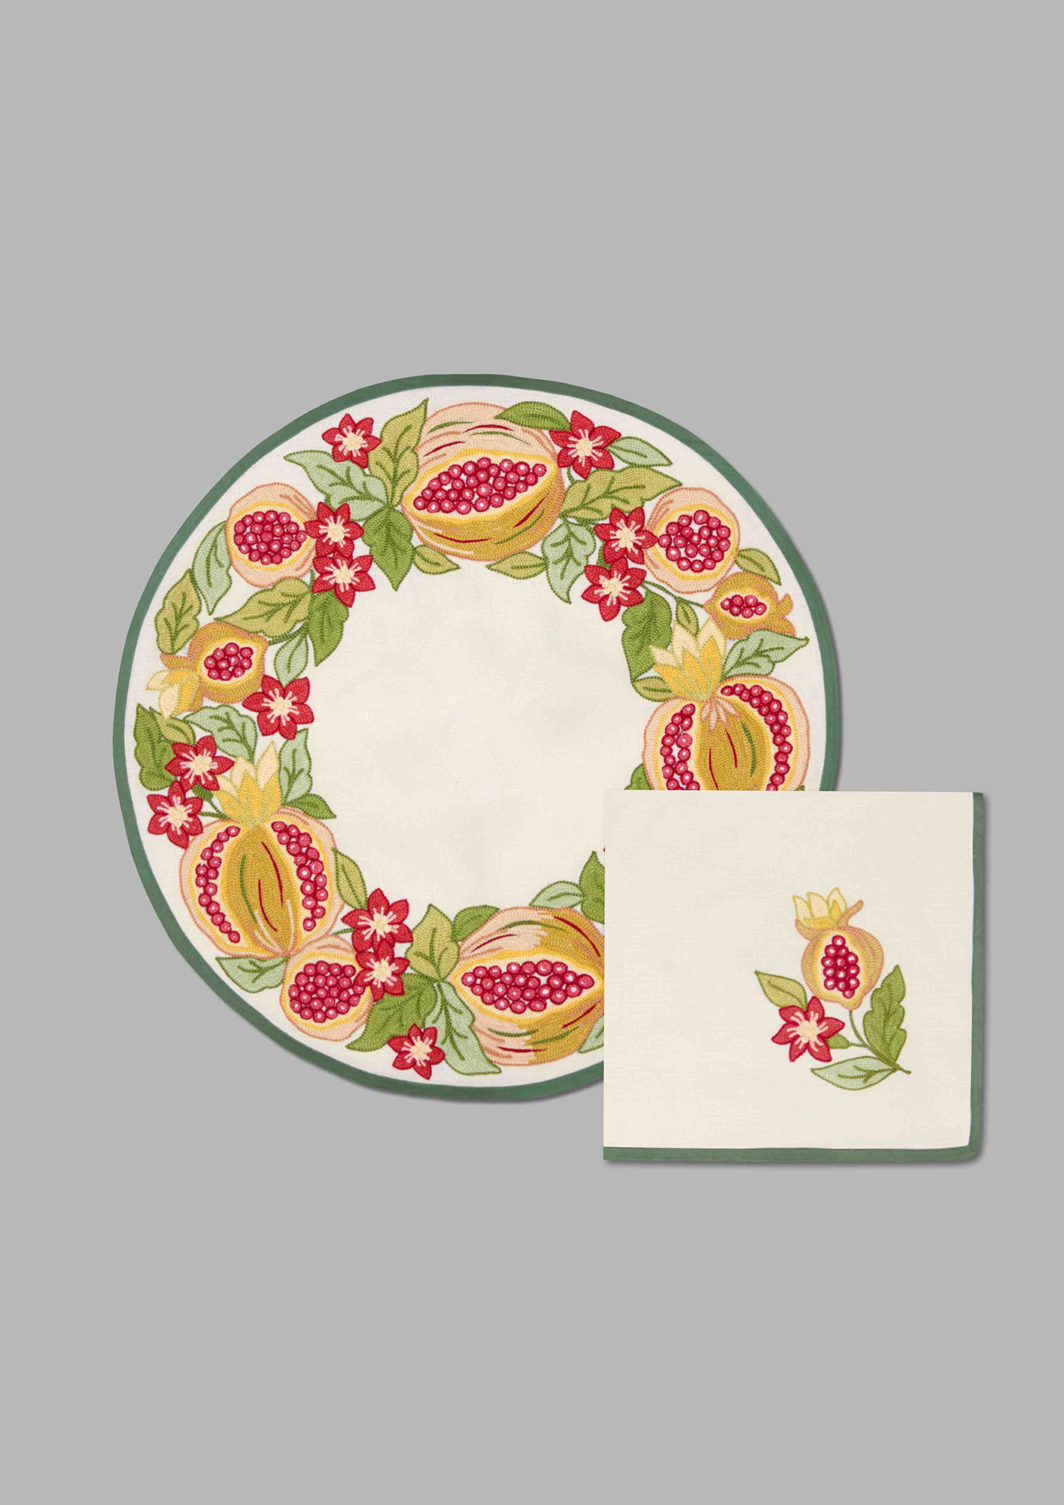 POMEGRANATE PLACEMAT SET OF. 2